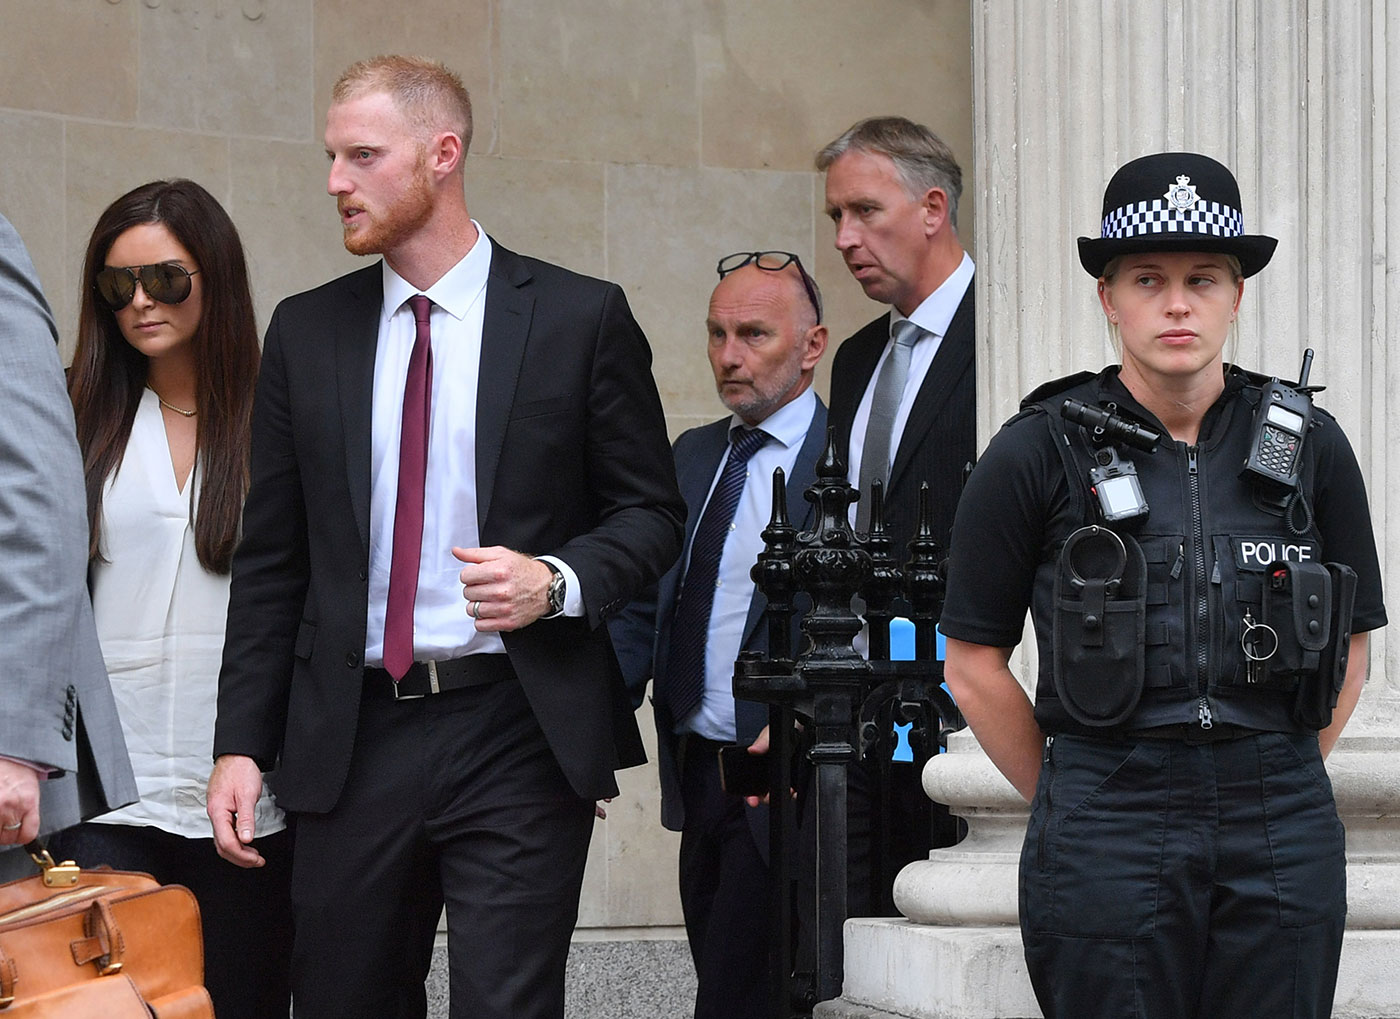 Ben Stokes found not guilty of affray over street fight